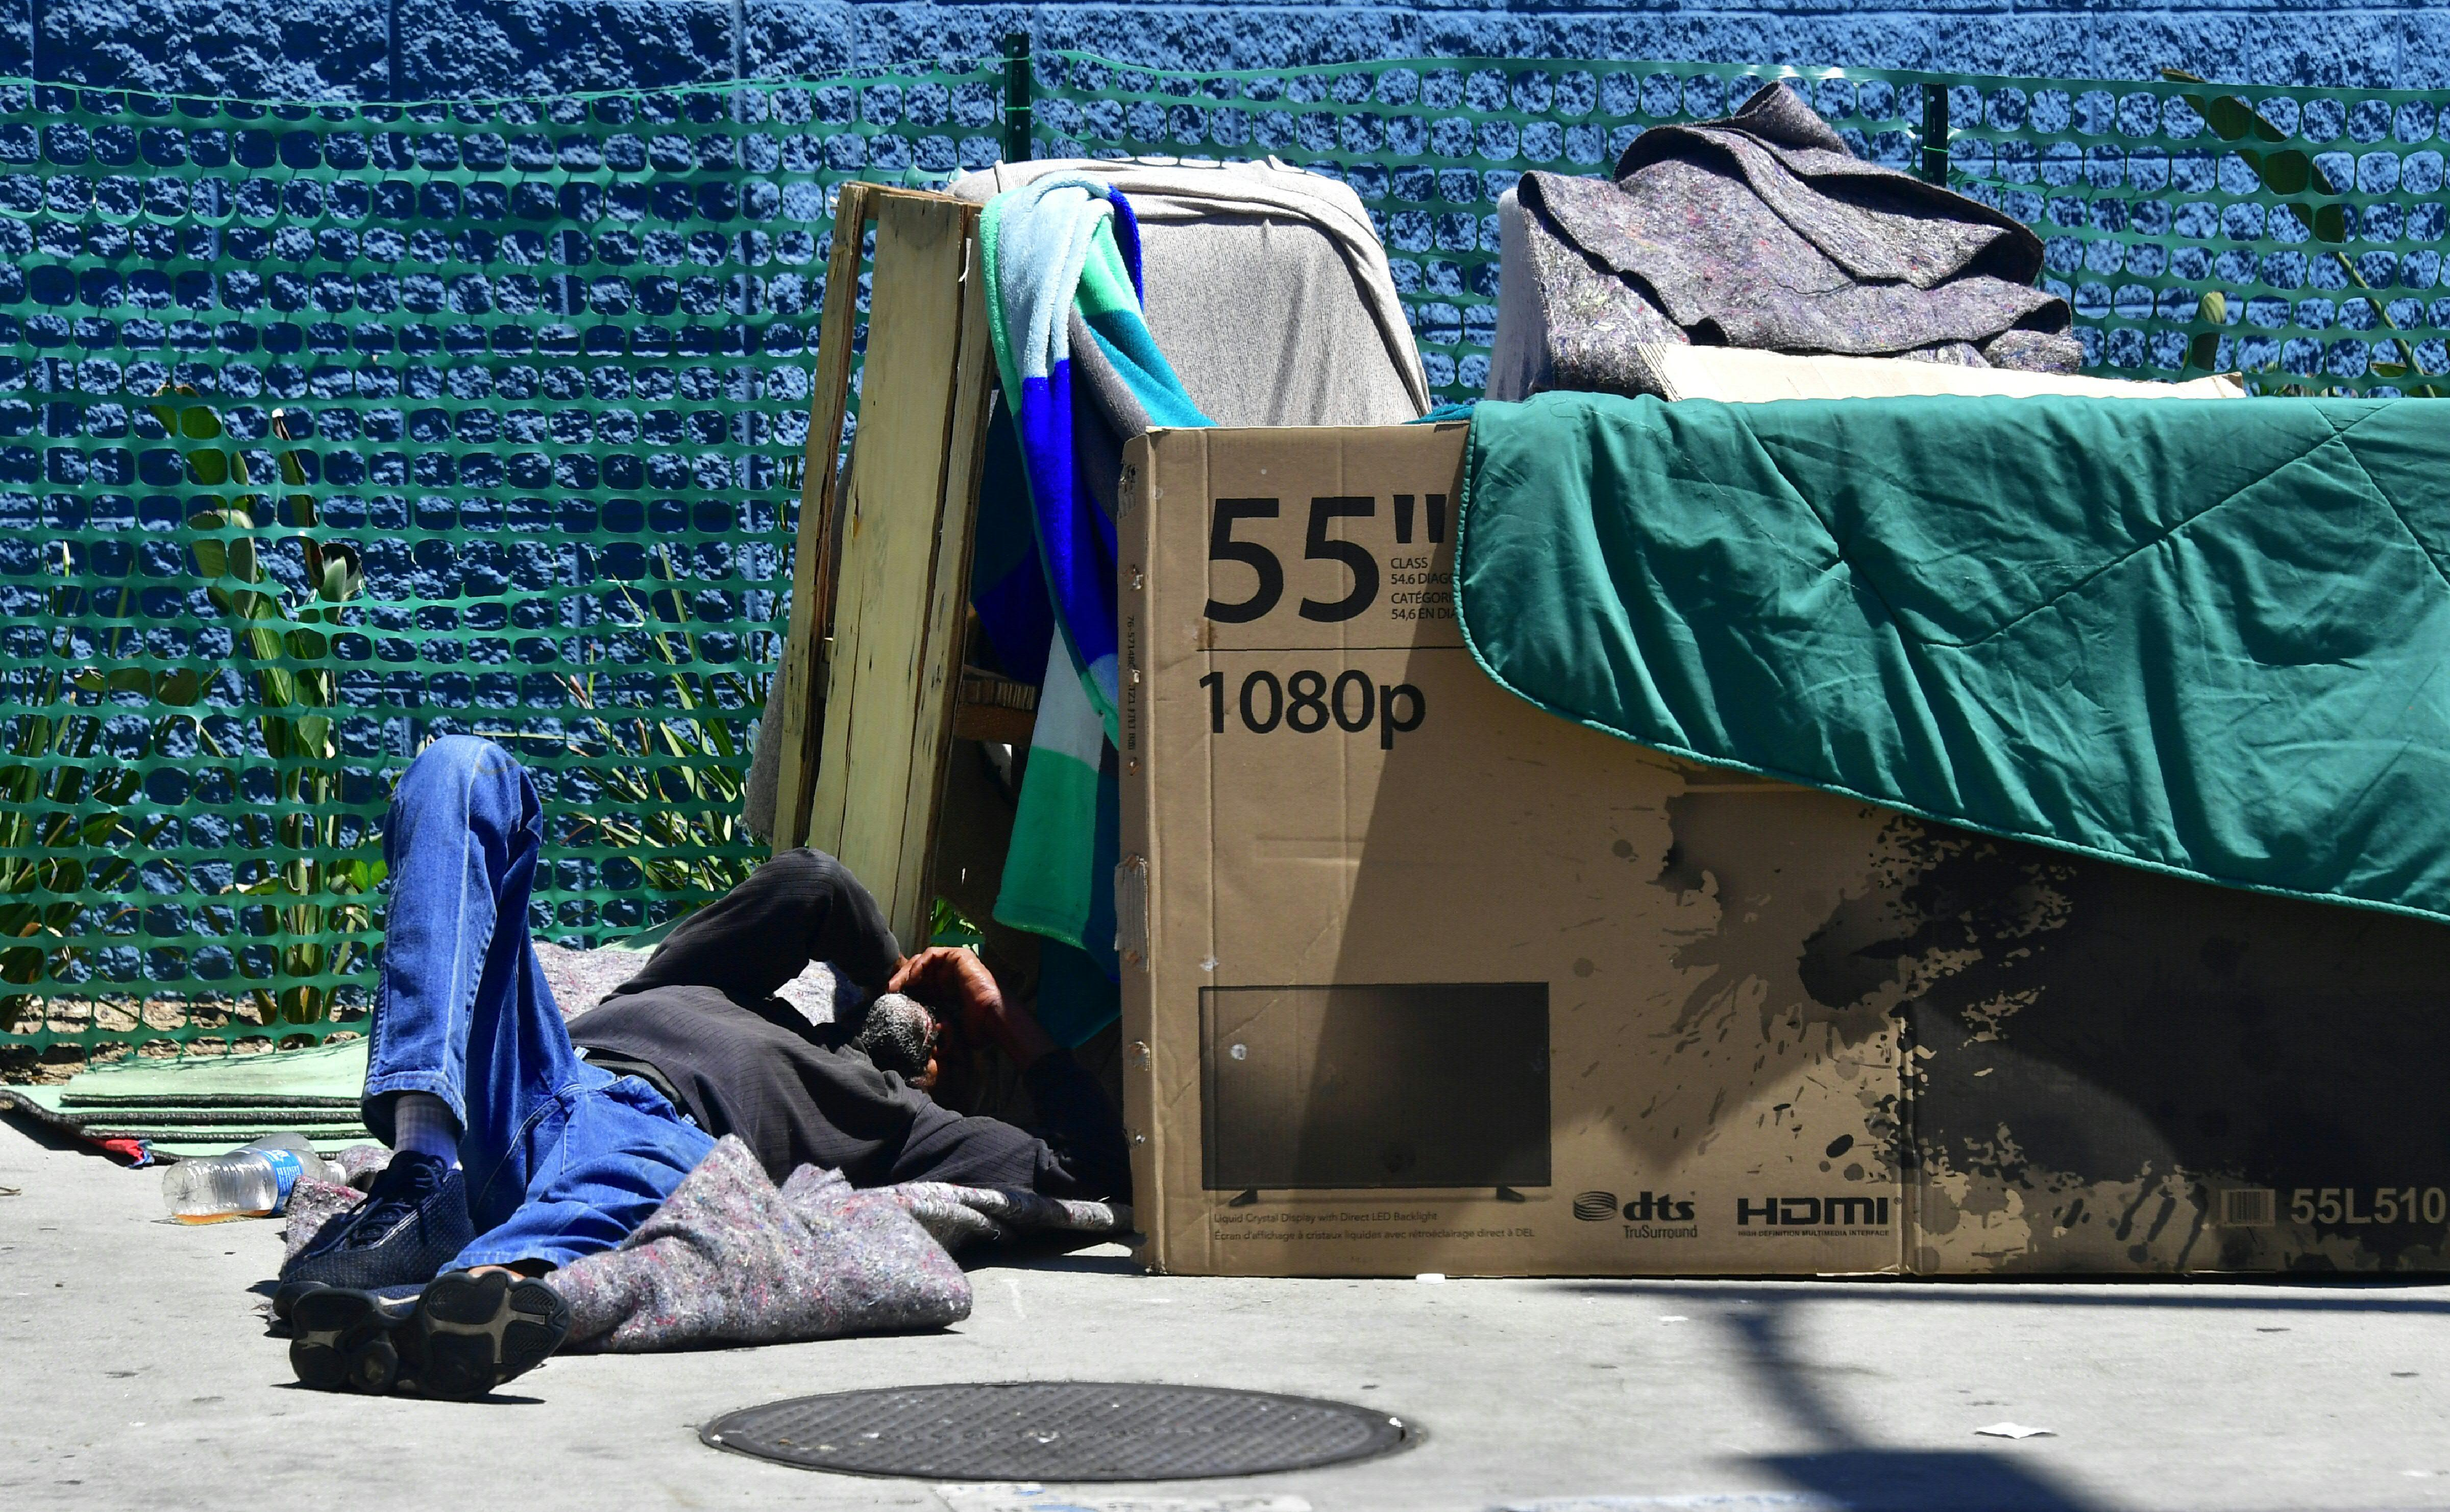 slate.com - Daniel Politi - Trump Administration Declares War on Poverty 'Largely Over' Because of Huge Success